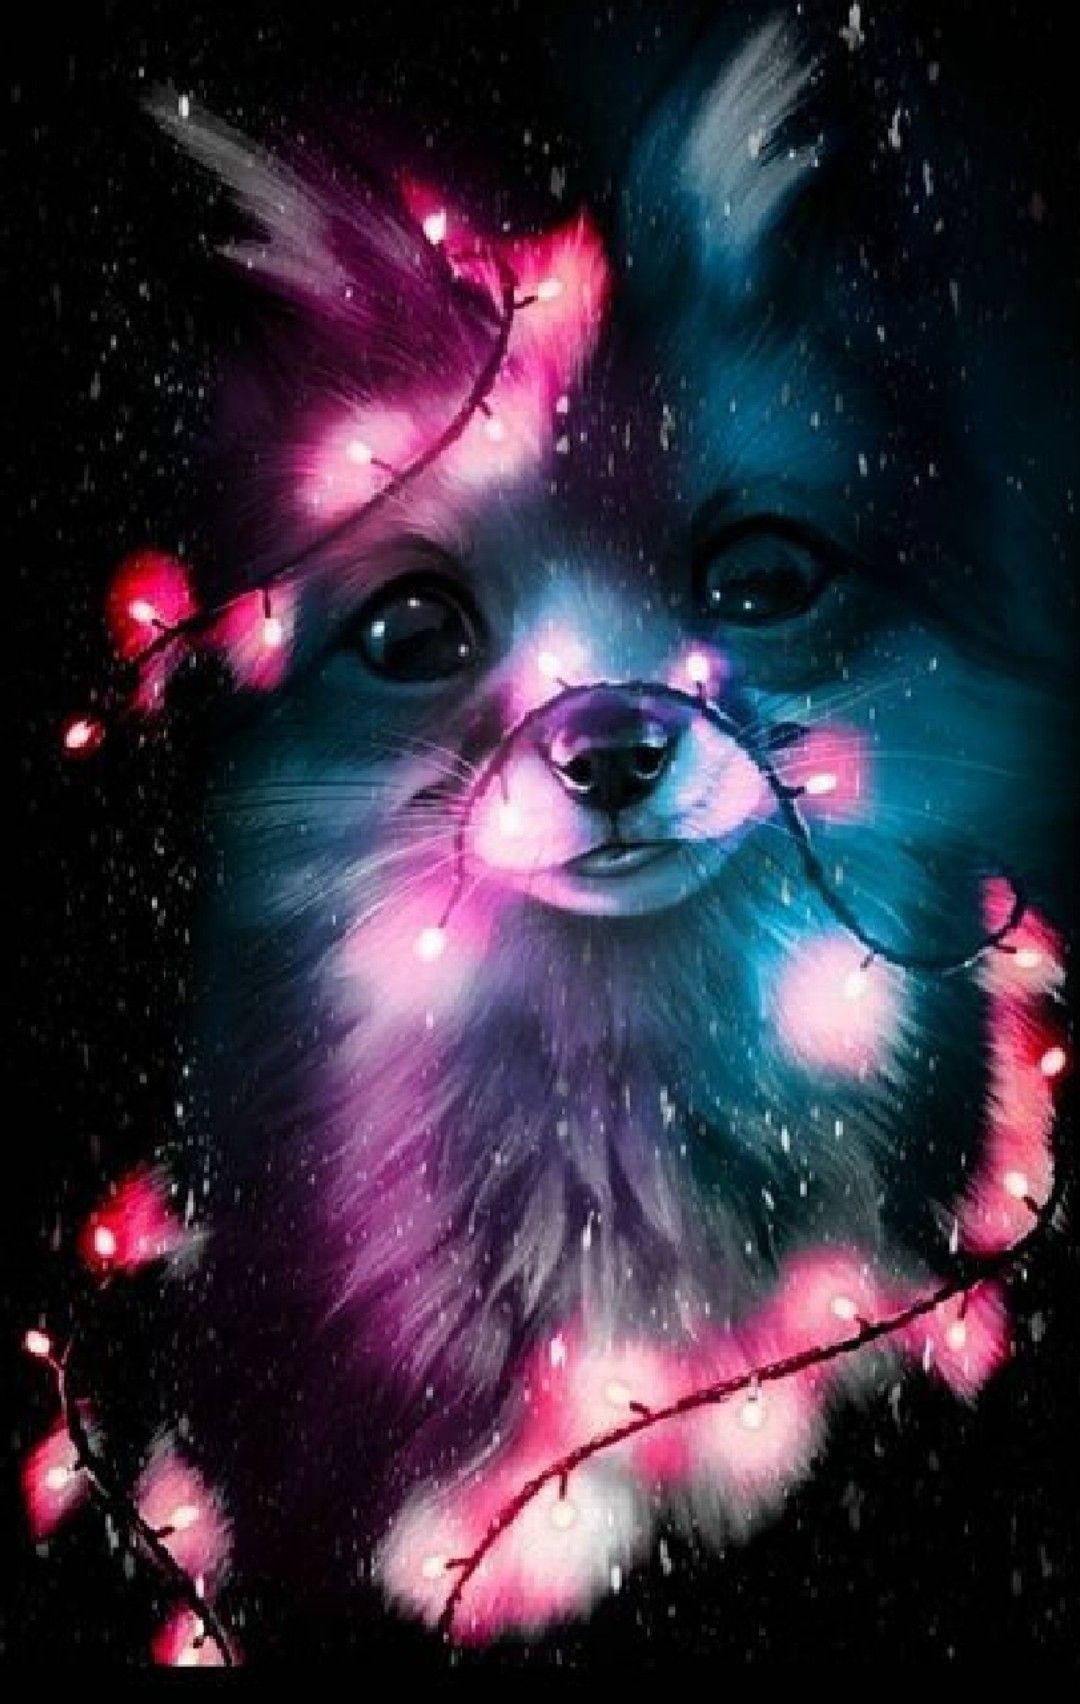 Pin By Ana Lopez On Animals Wallpapers Anime Animals Cute Animal Drawings Cute Cartoon Animals